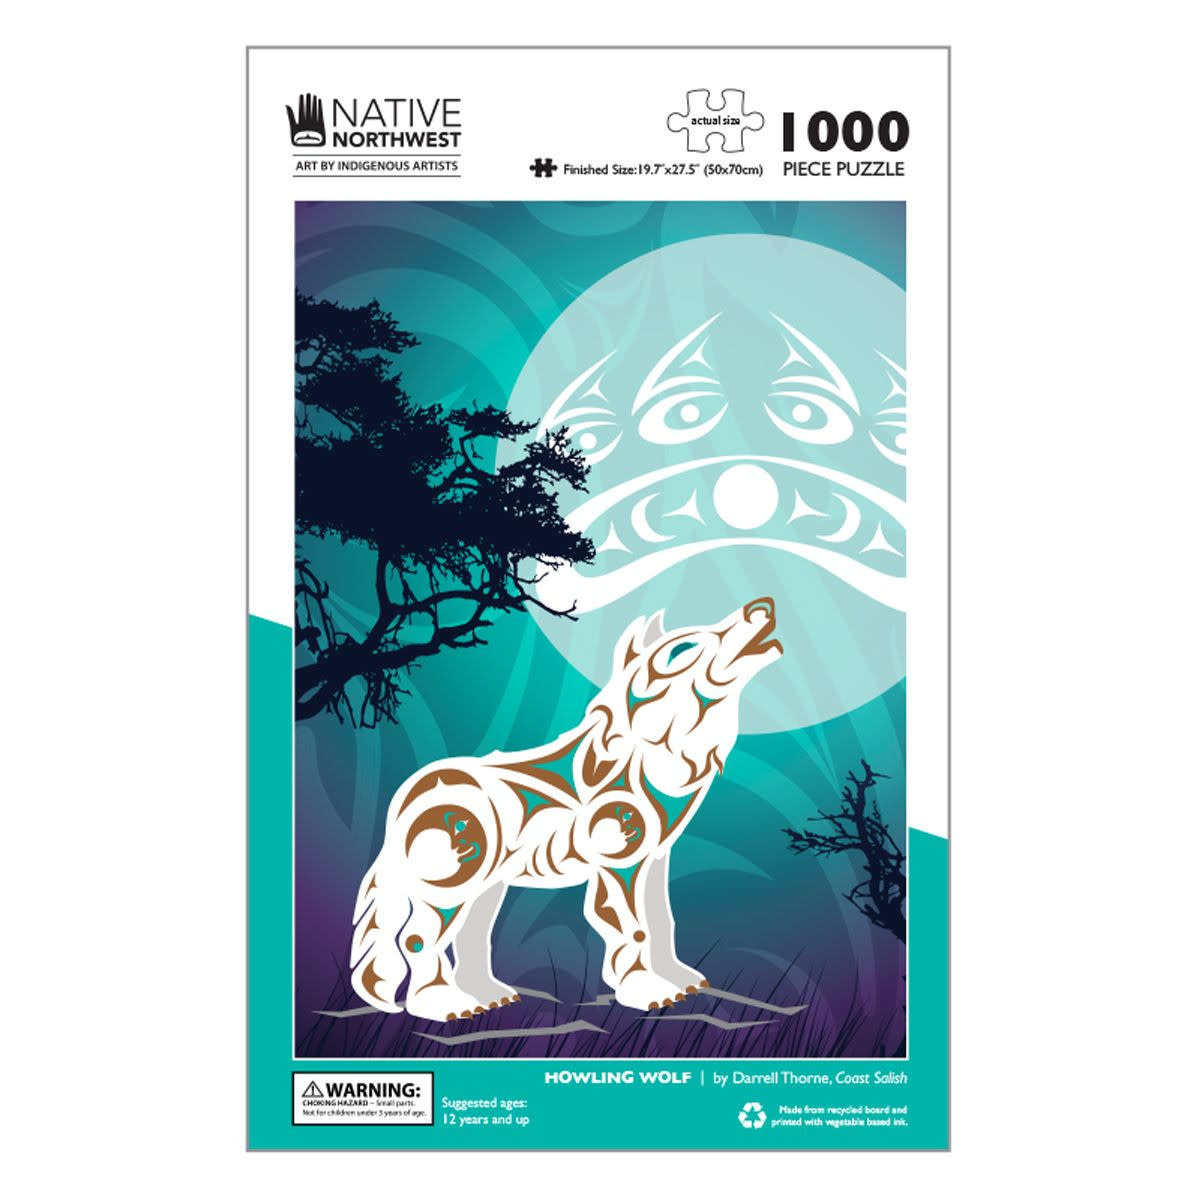 1000 pcs Puzzle - Howling Wolf by Darrell Thorne-1